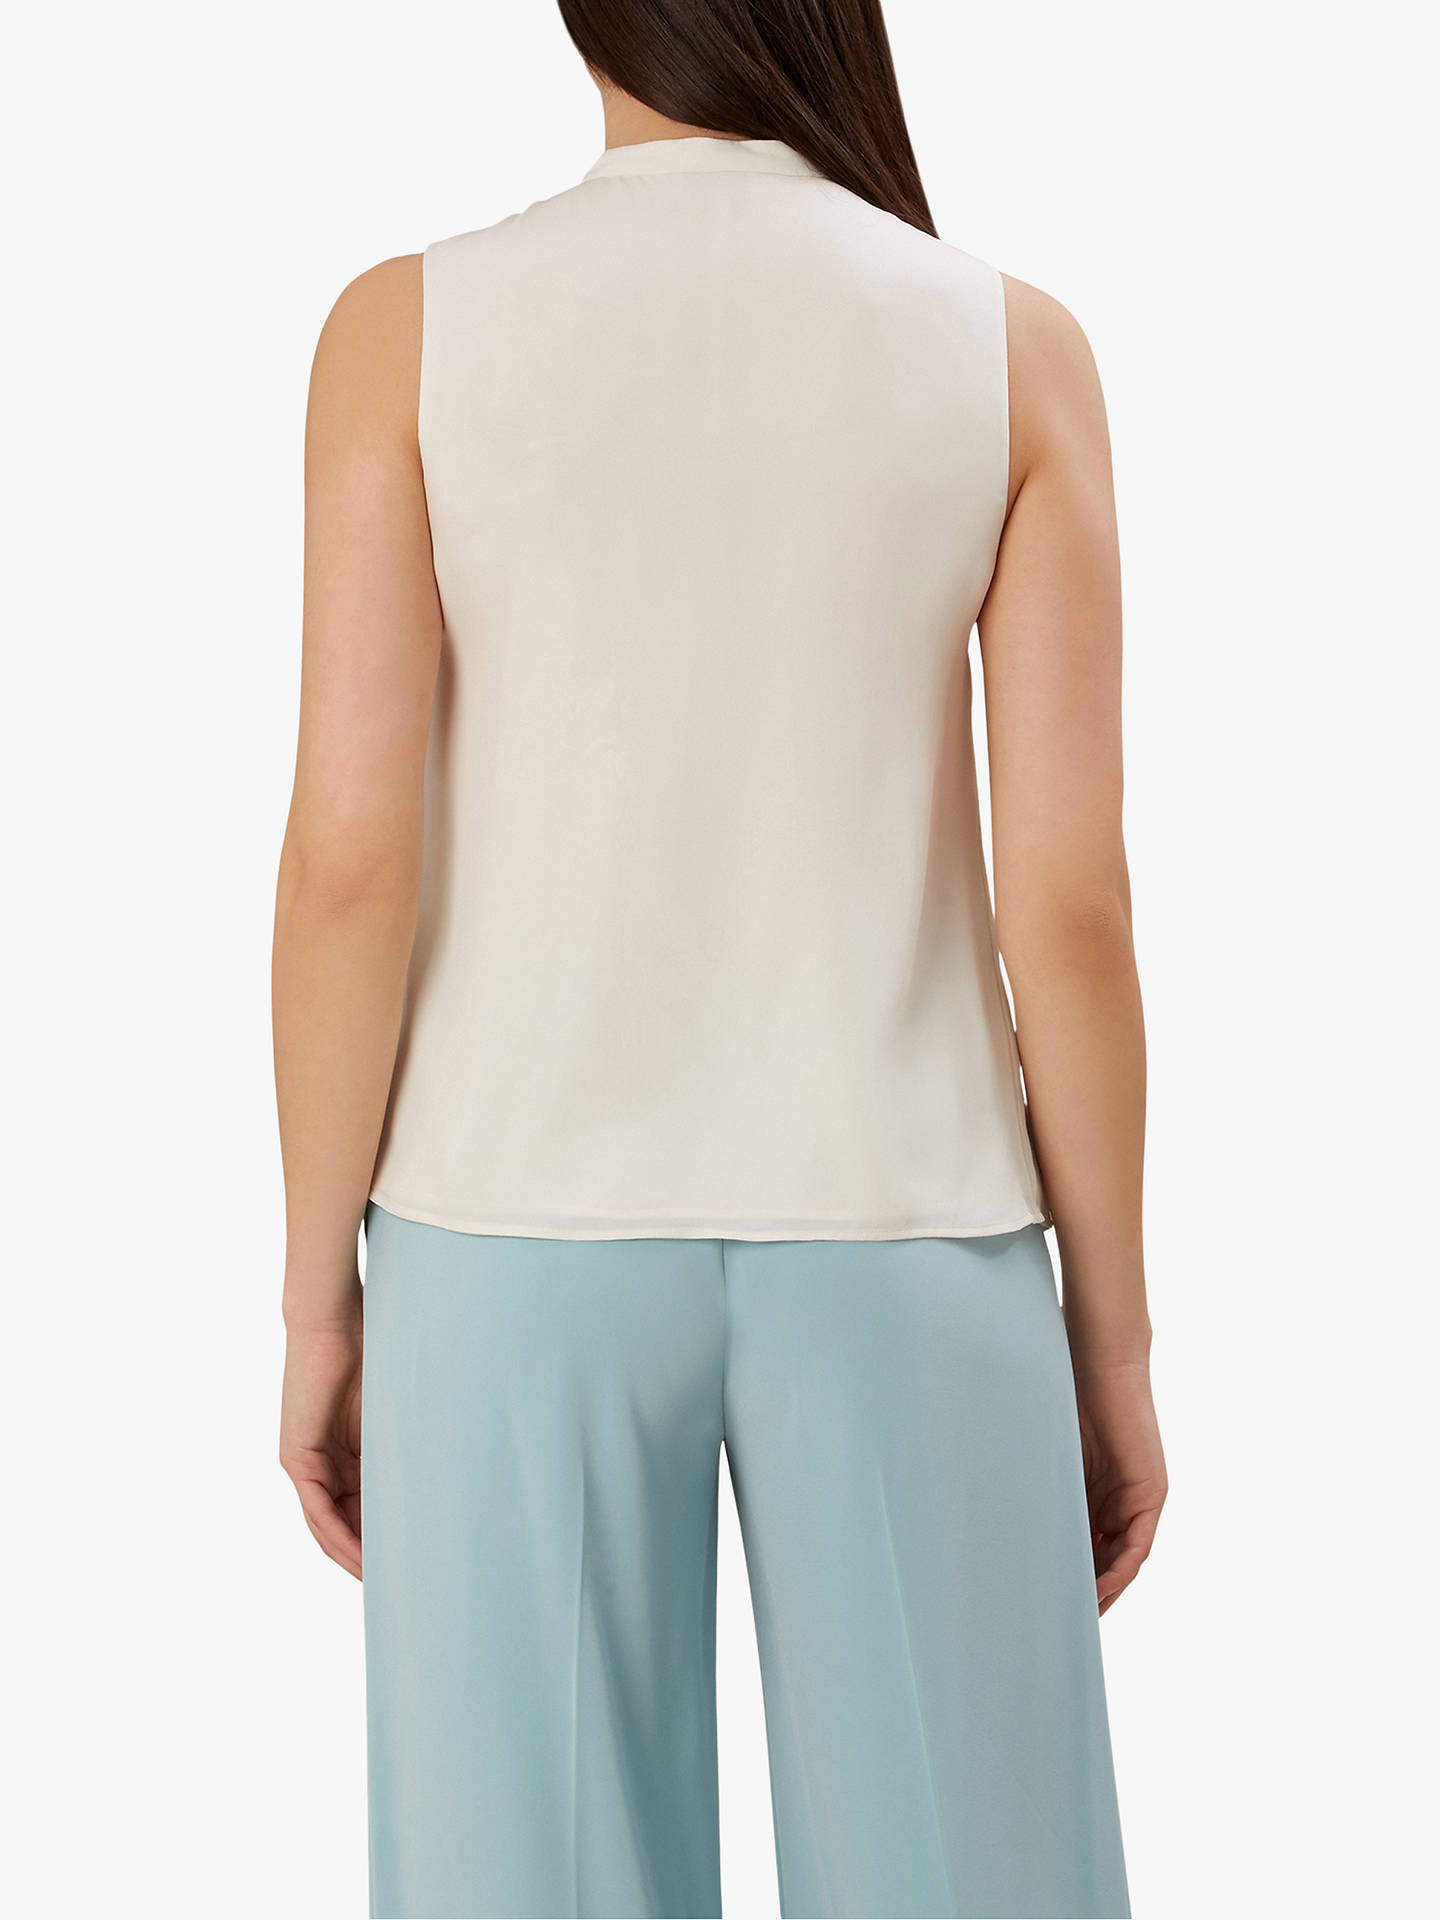 6a7cc5c7d34e9 ... Buy Hobbs Aoife Silk Sleeveless Top